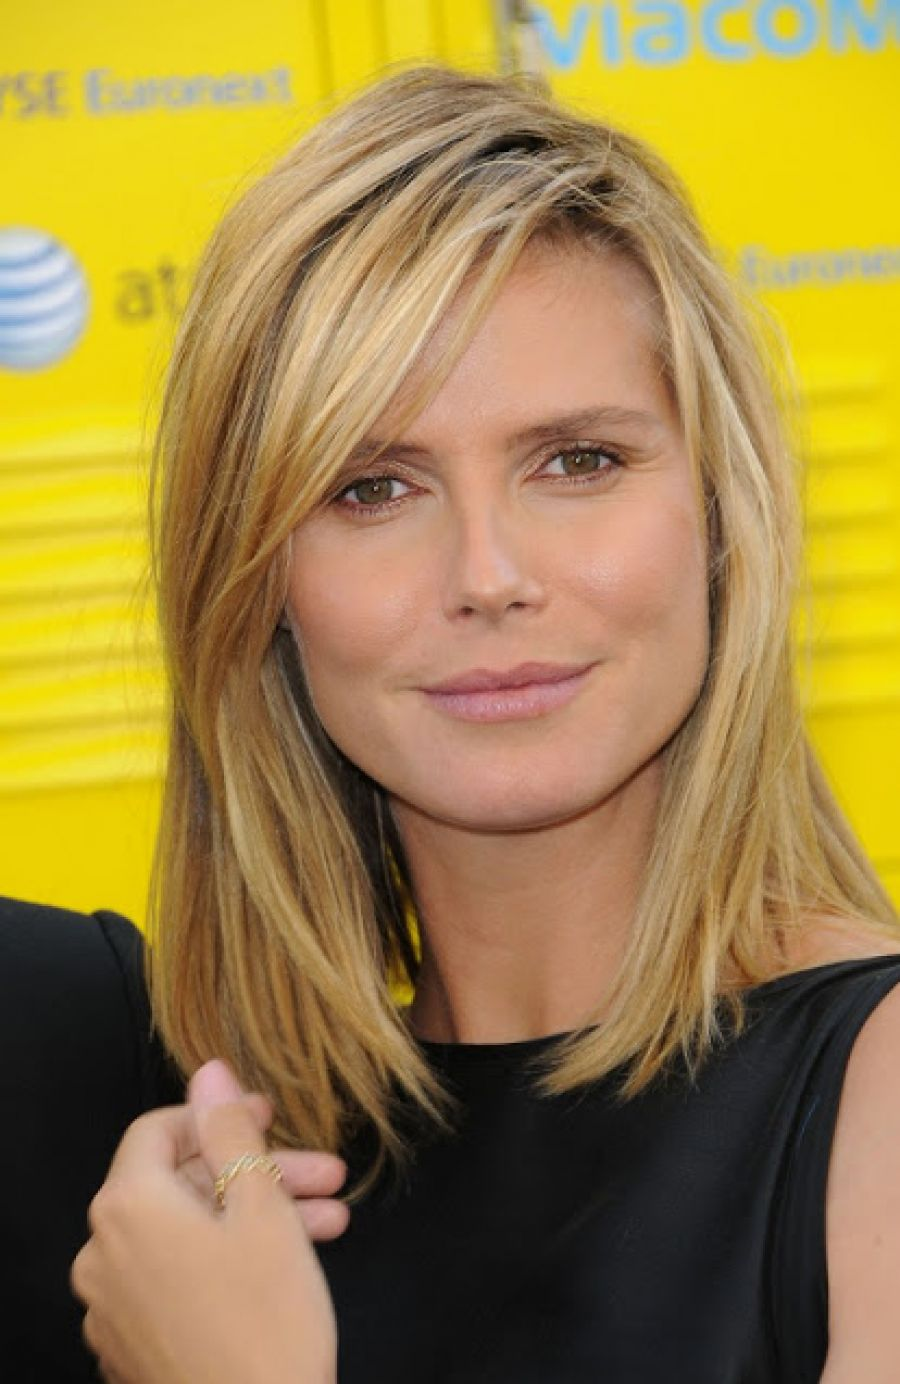 Pictures of Medium Hairstyles No Bangs